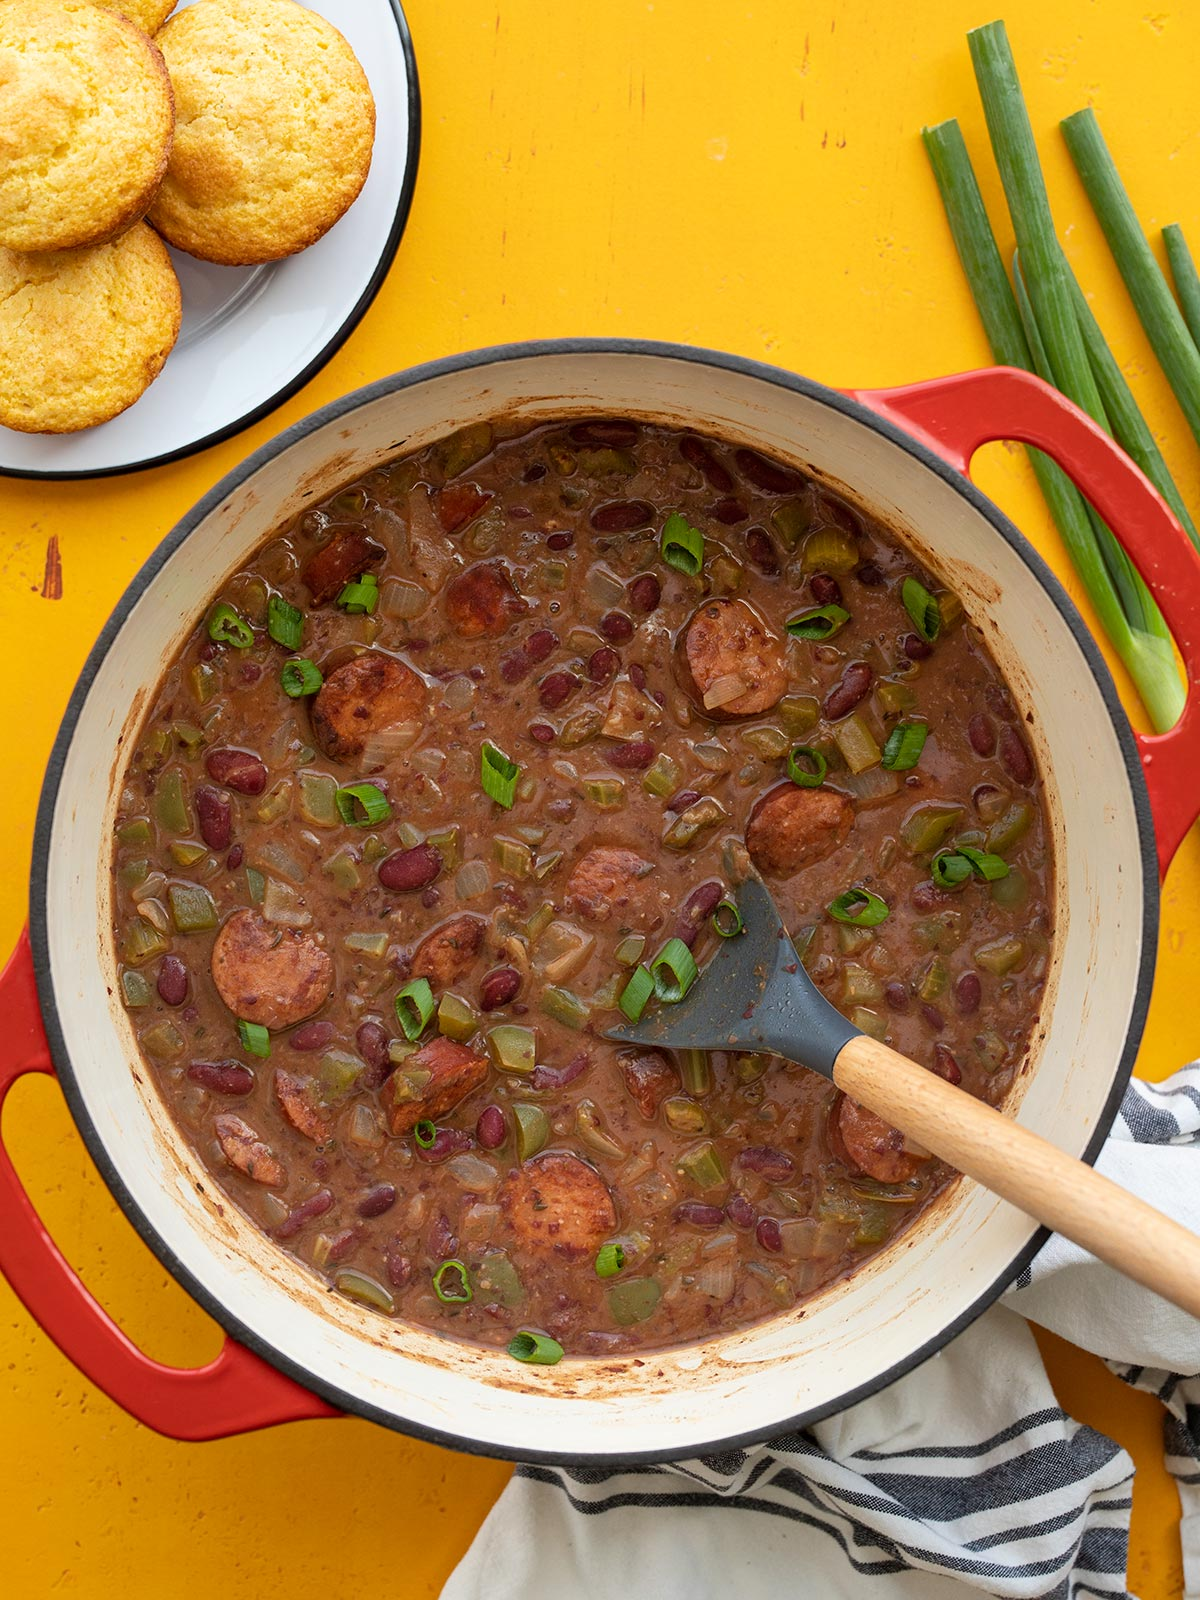 Overhead view of a pot of red beans with sausage, corn muffins on the side